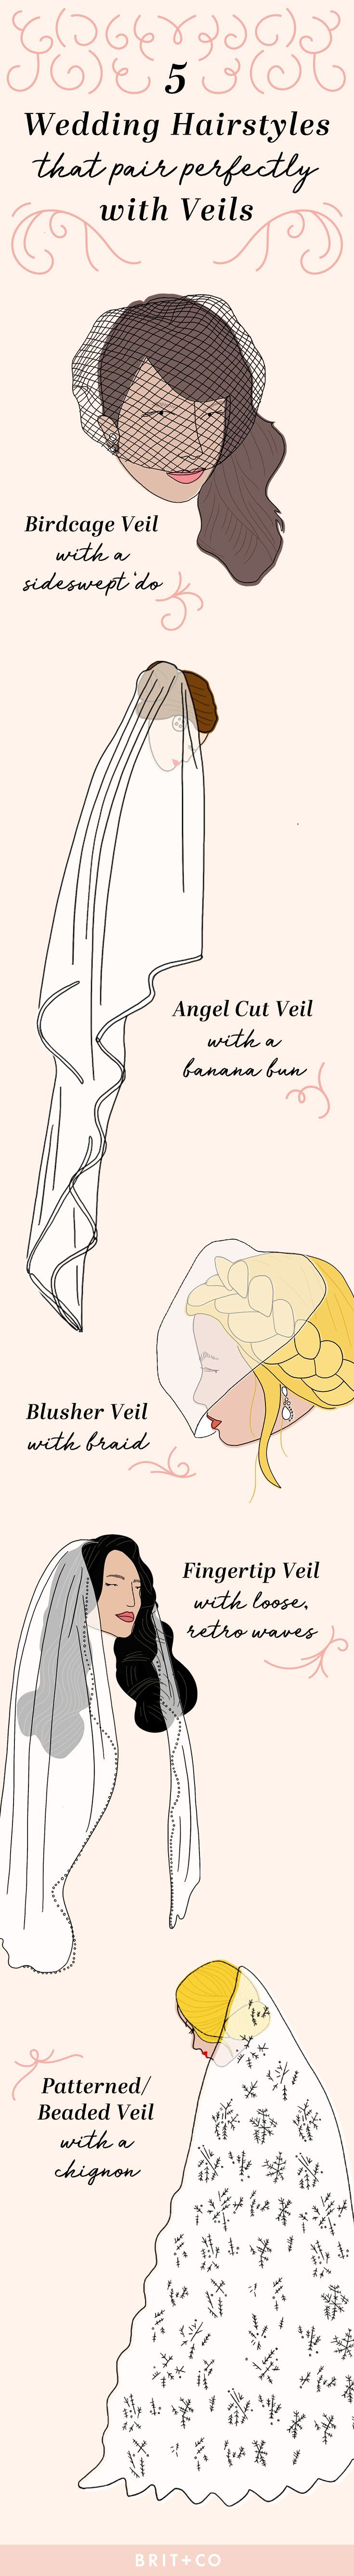 5 Wedding Hairstyles That Pair Perfectly With Veils Veil